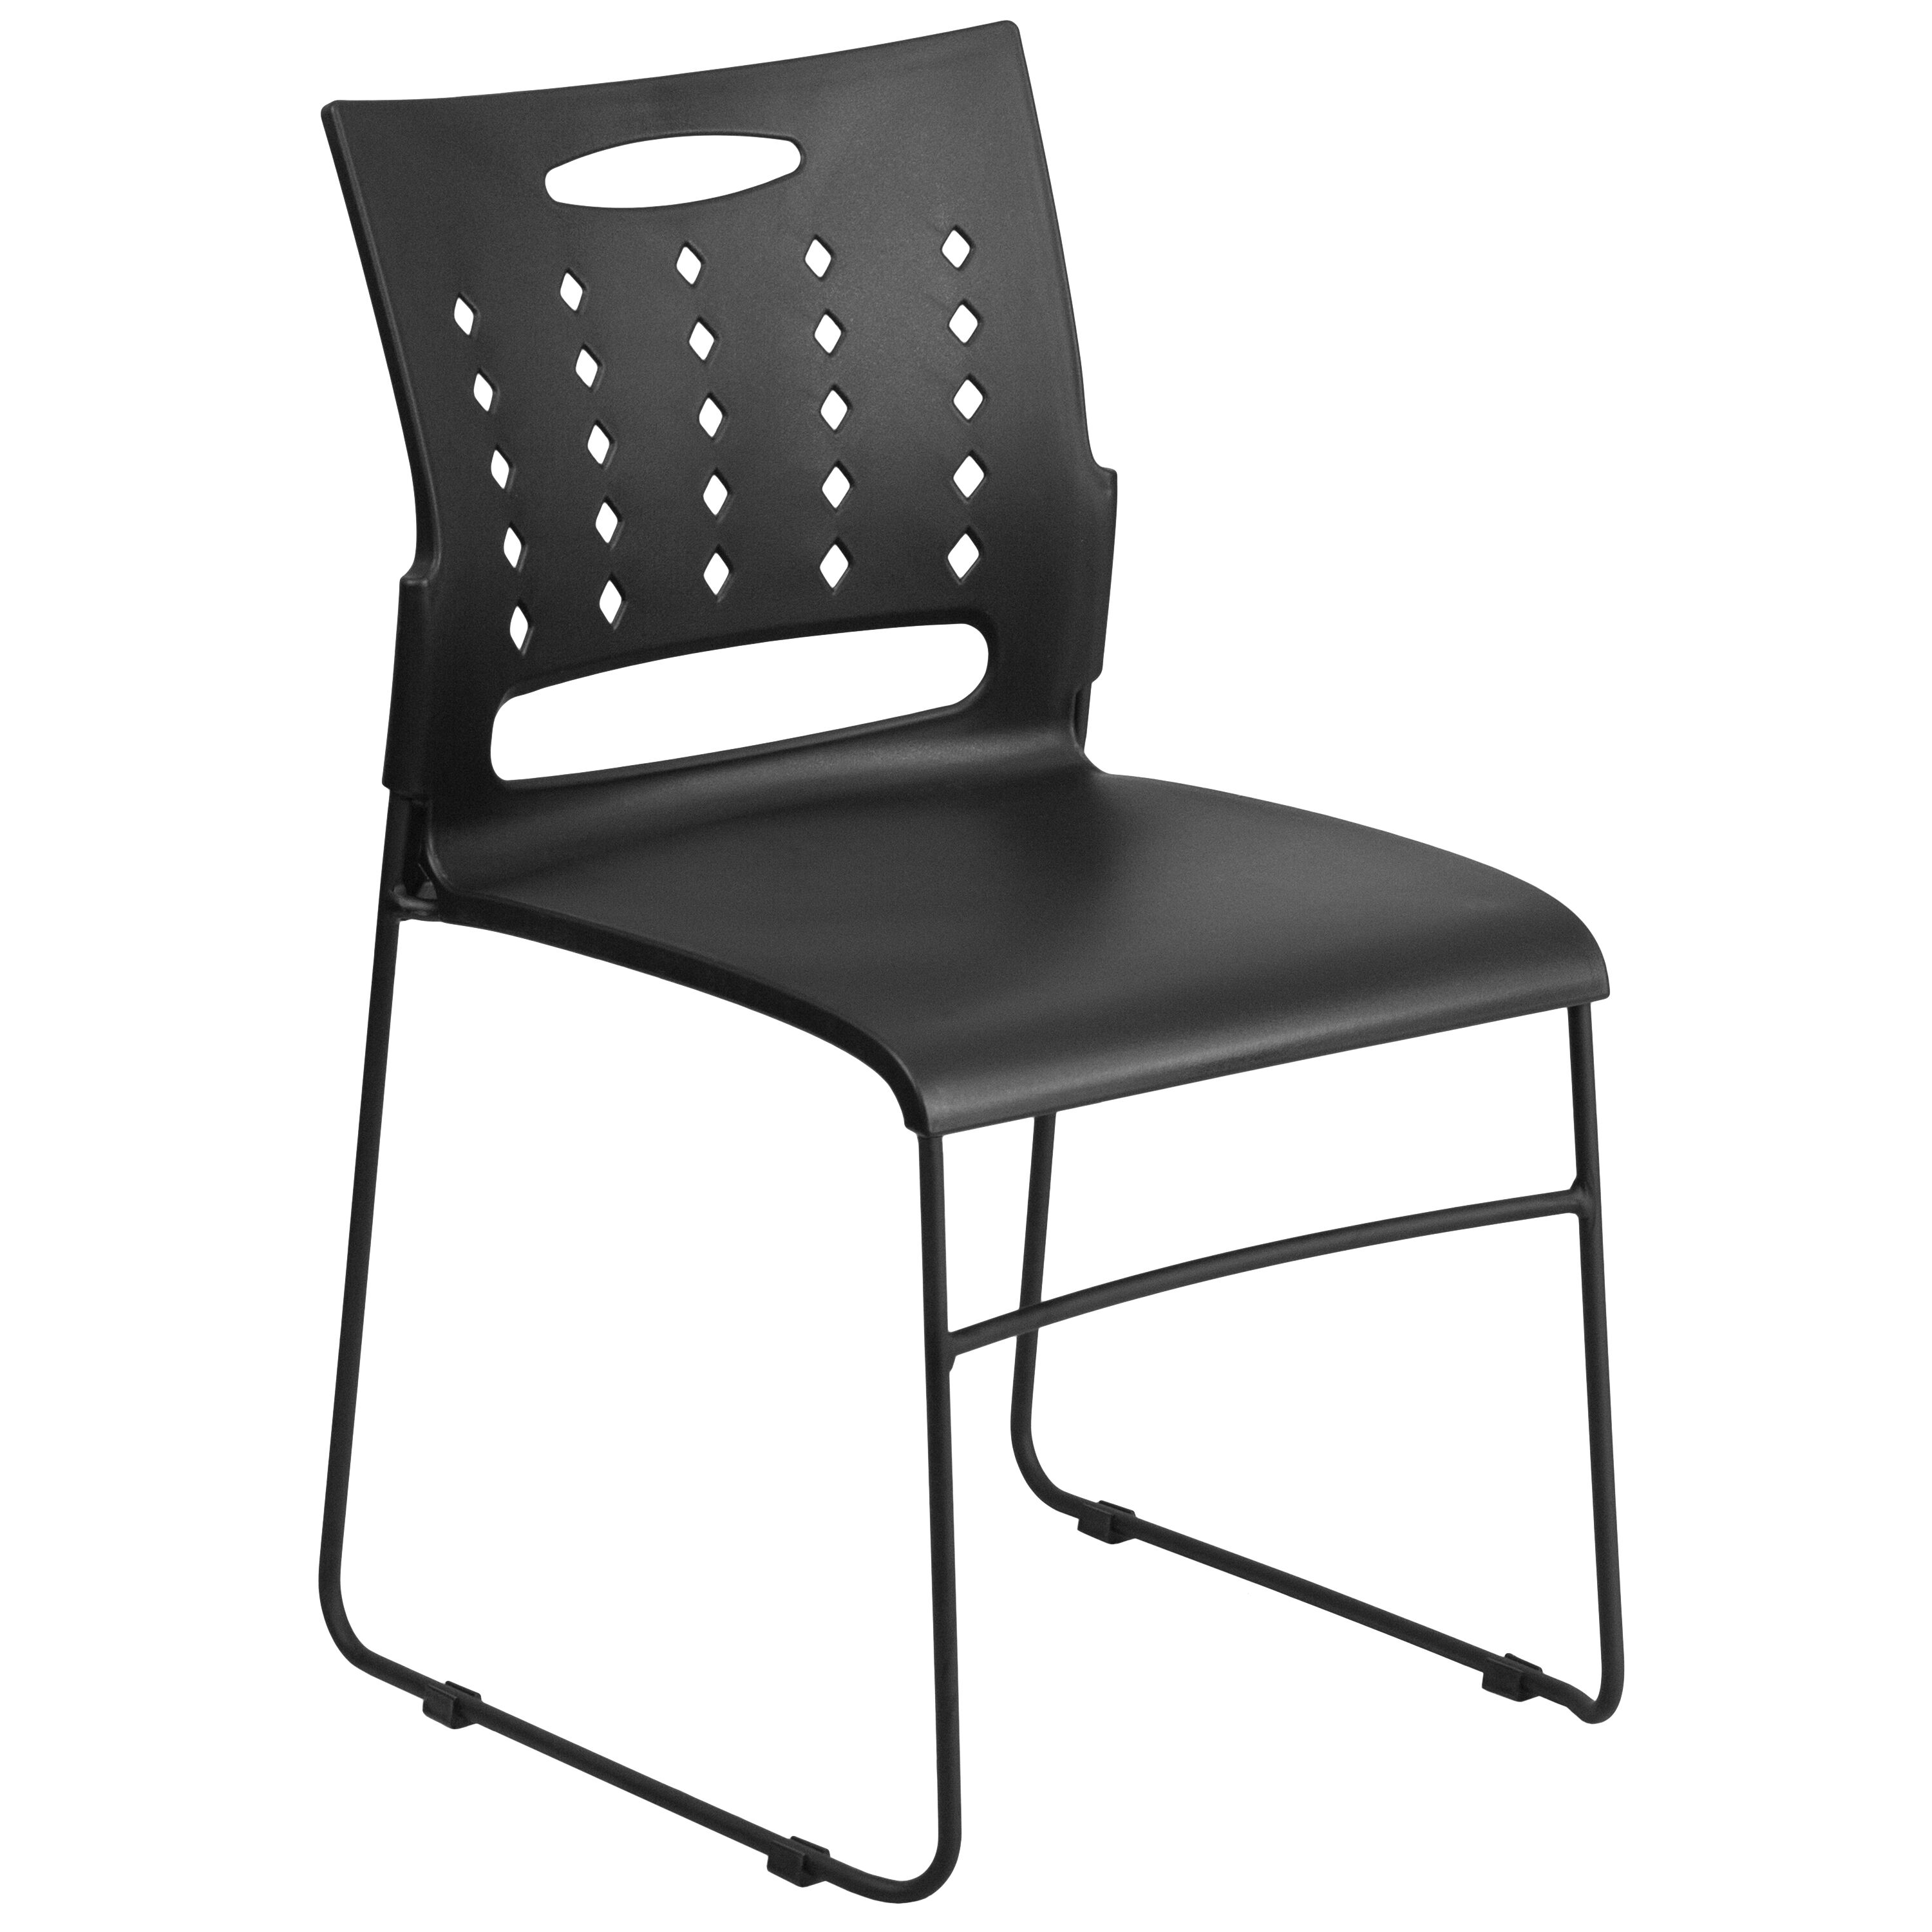 Capacity Black Sled Base Stack Chair With Air Vent Back